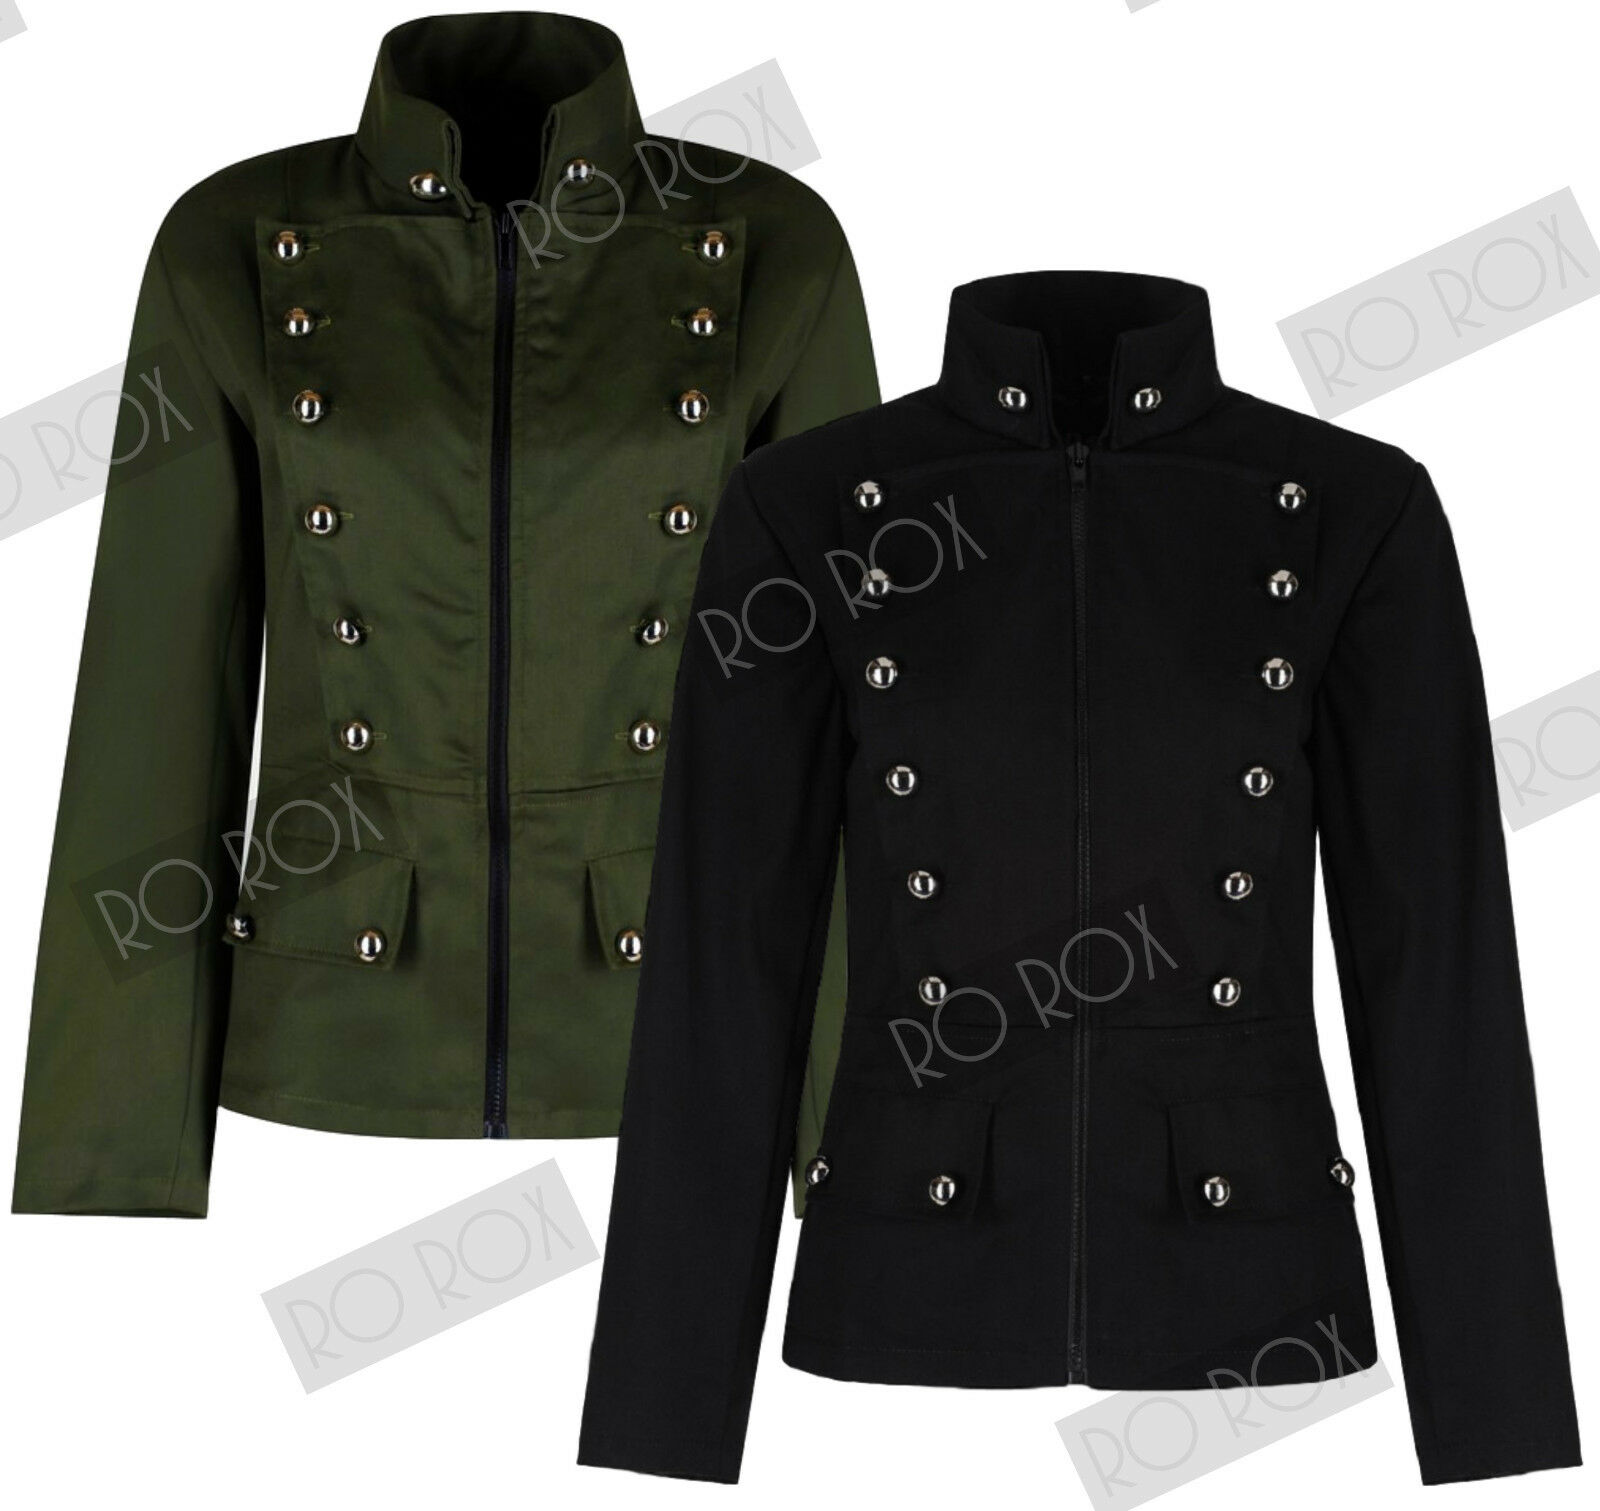 Womens Military Officer Army Parade Button Uniform Short Jacket Emo Punk  Gothic 157db287d6